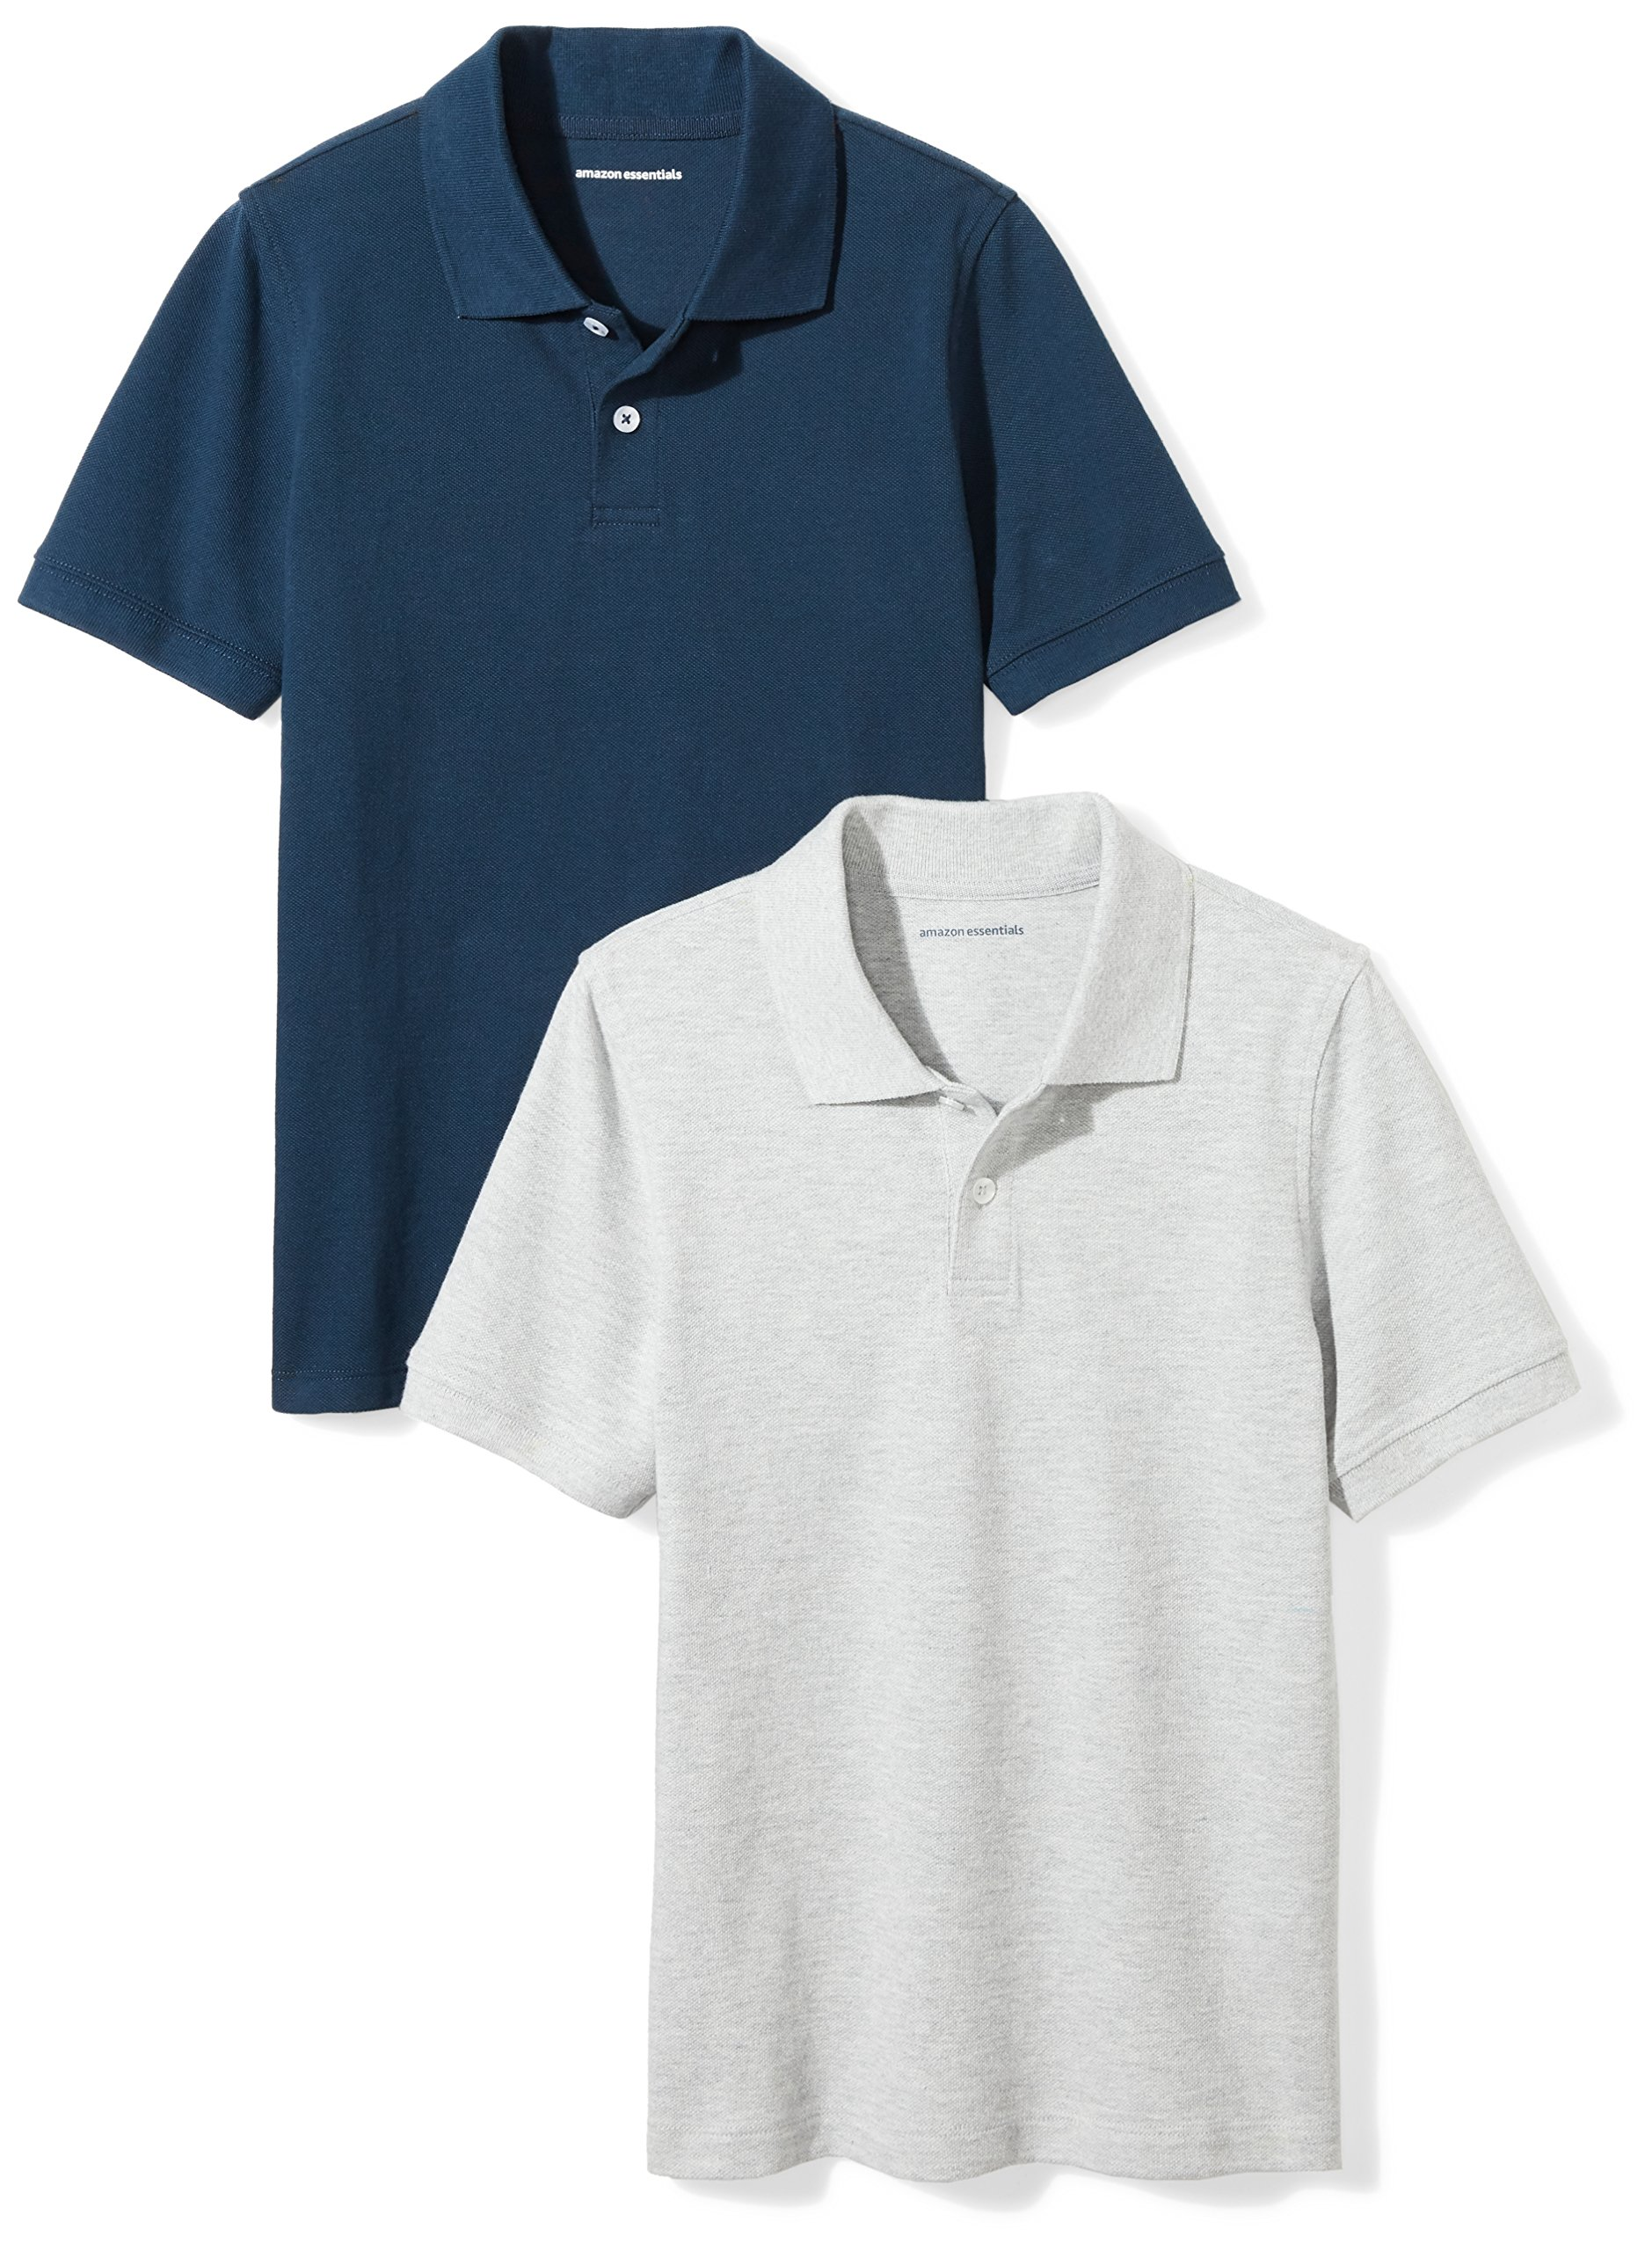 Amazon Essentials Boys' 2-Pack Uniform Pique Polo, Heather Grey/Navy, XXL(14)